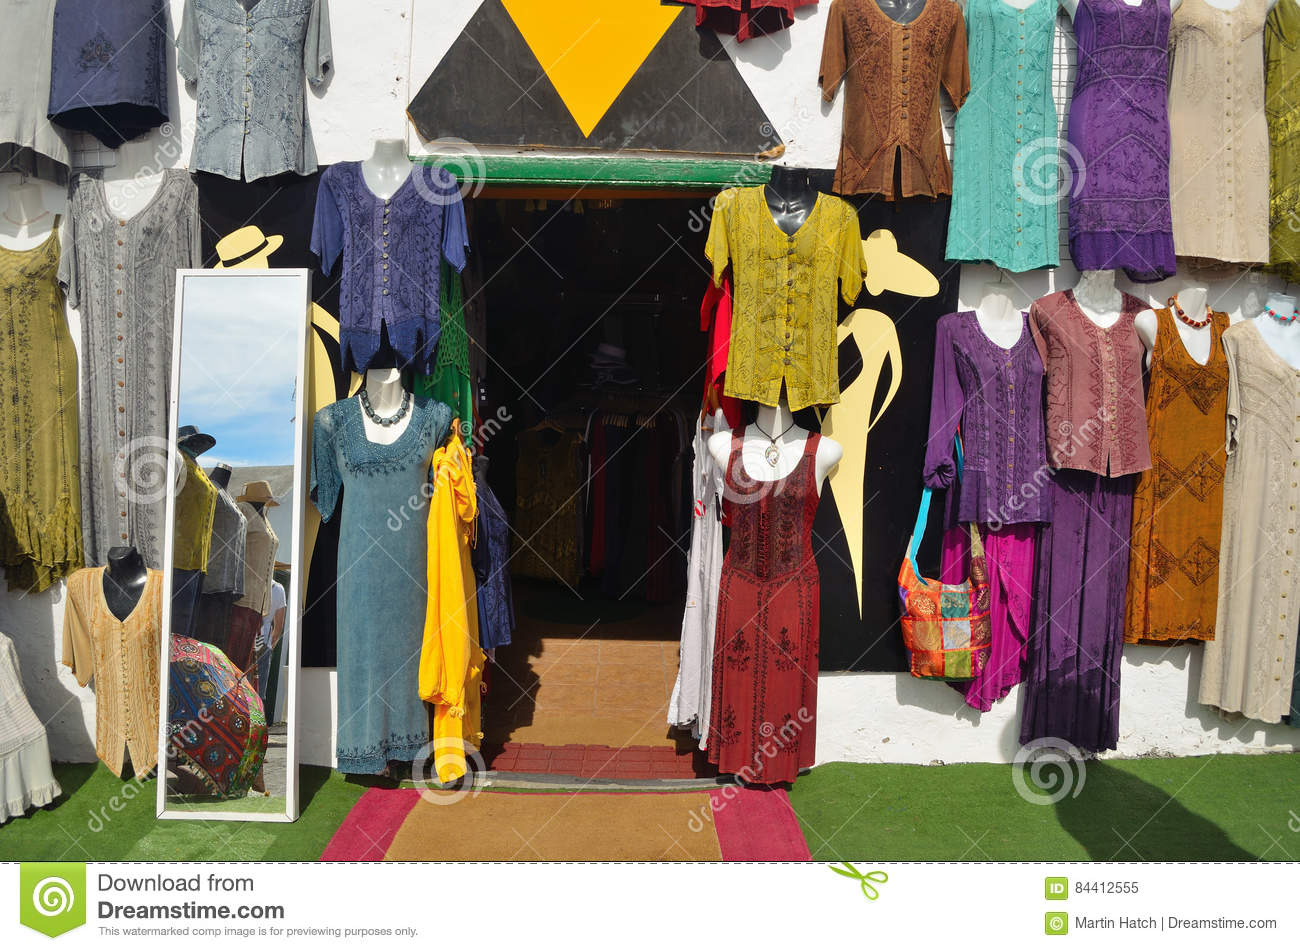 Shopfront with colorful garments hanging on wall and mirror.